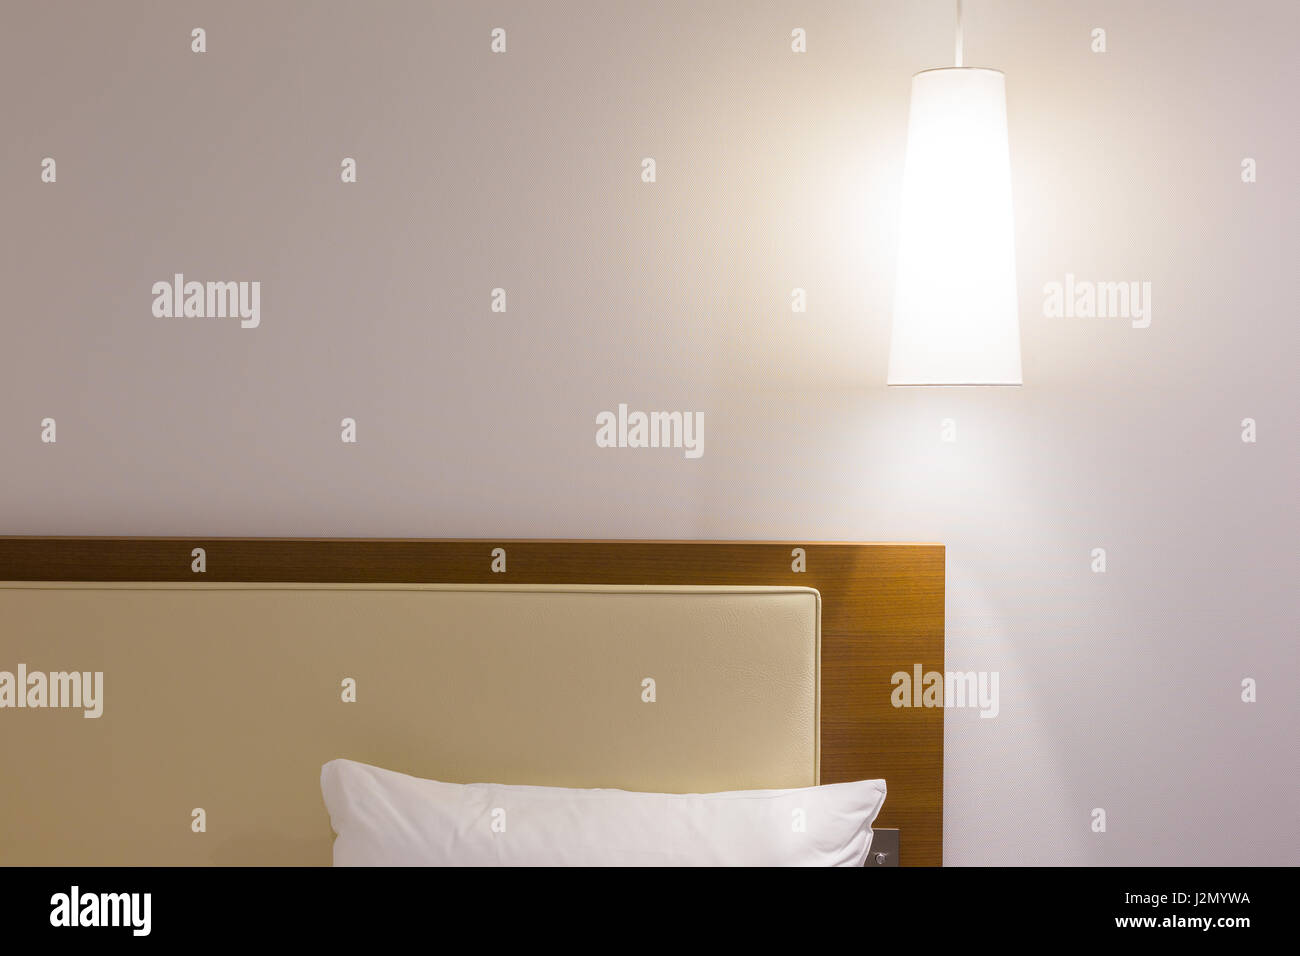 Bed Headboard White Pillow And Over Head Lamp In Simple And Stock Photo Alamy